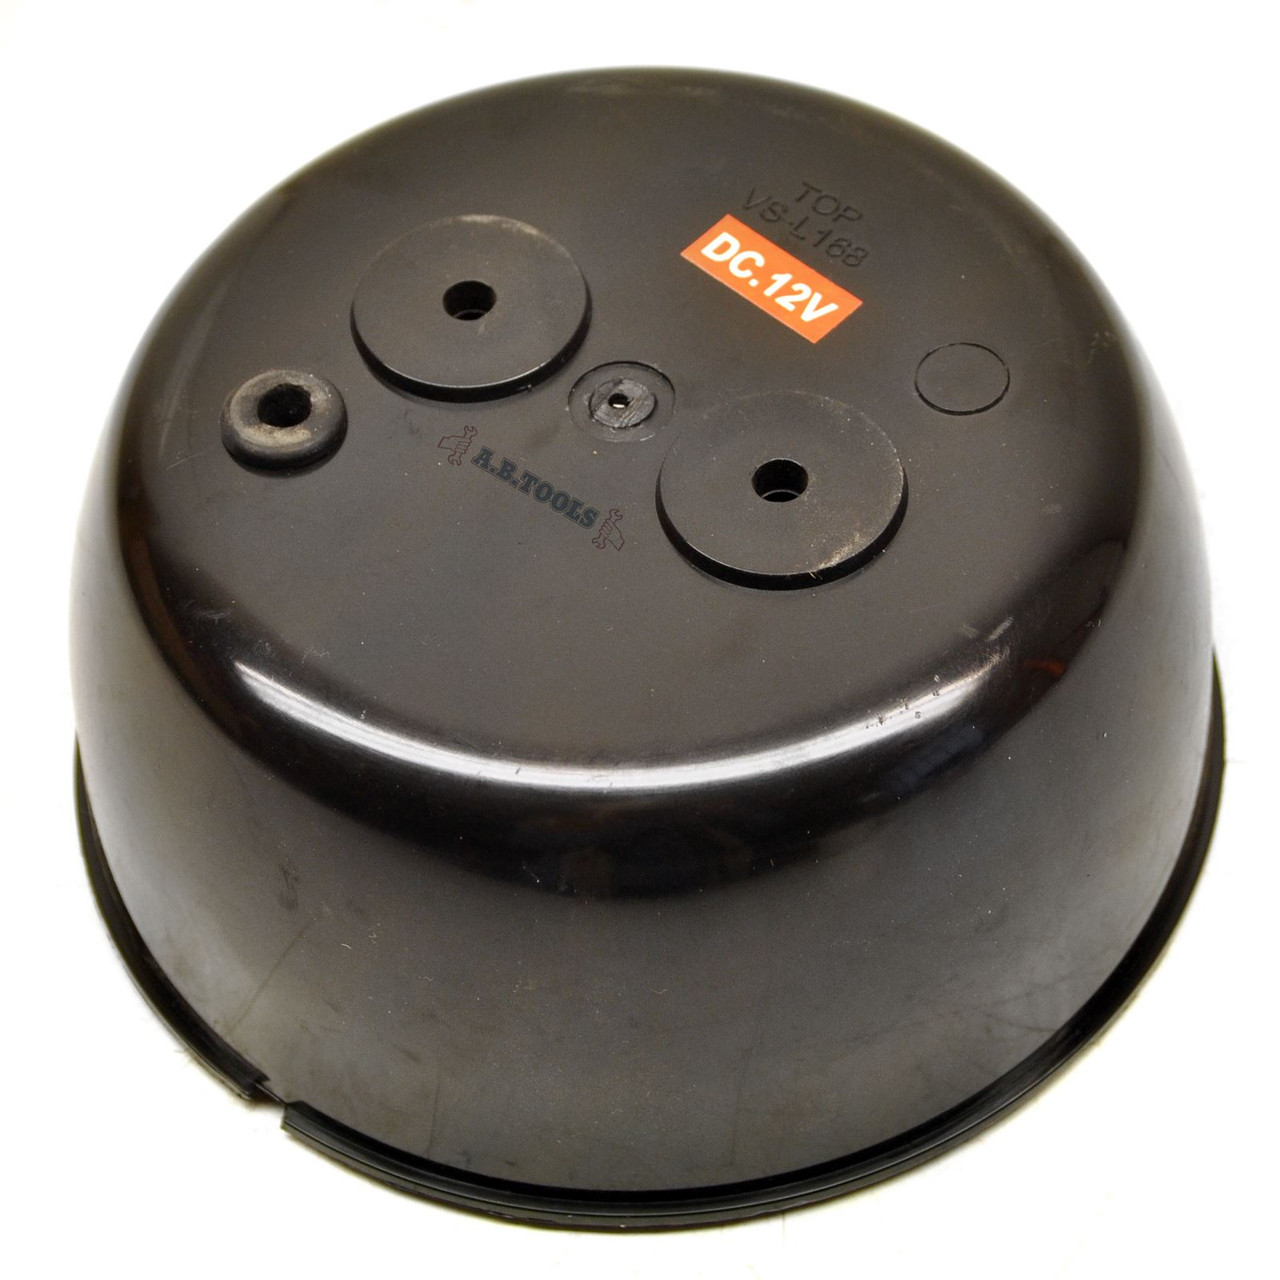 Backing Cup for Round LED Trailer / Truck Lights TR120